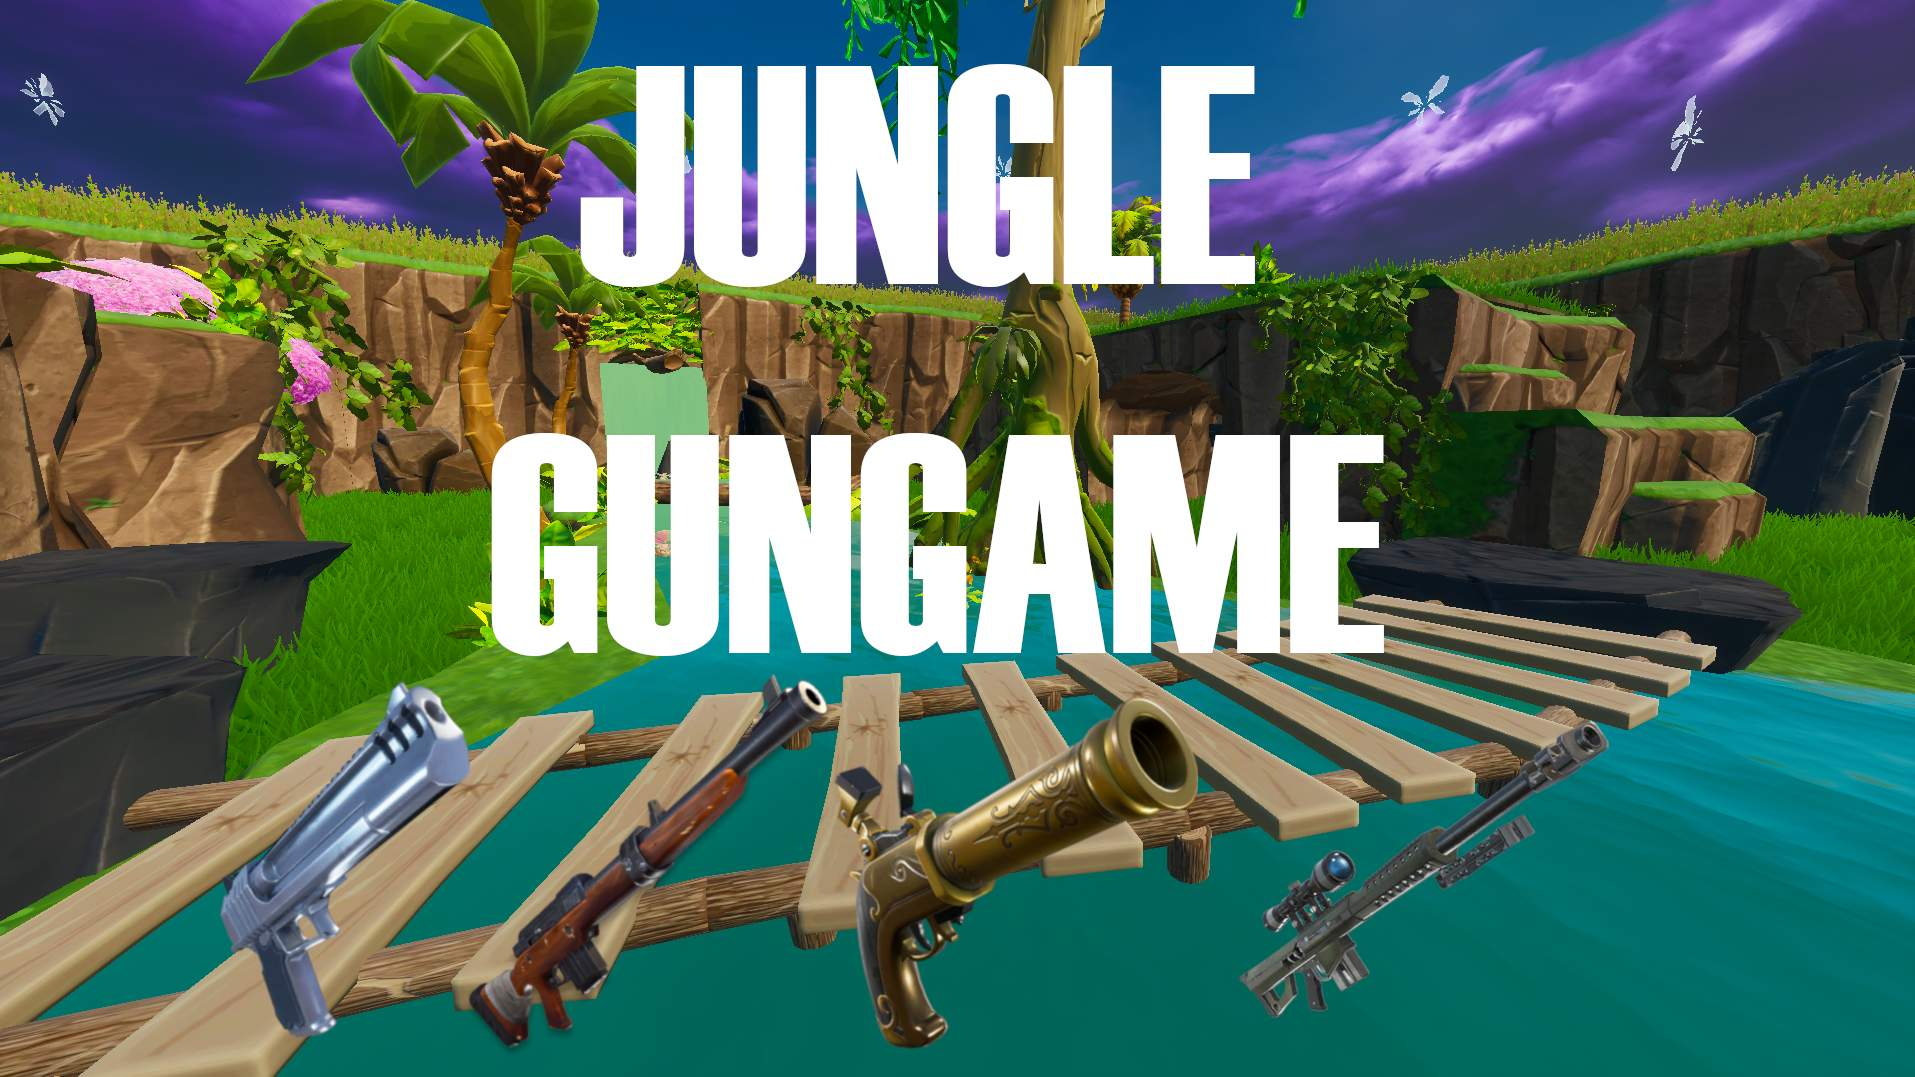 JUNGLE GUNGAME